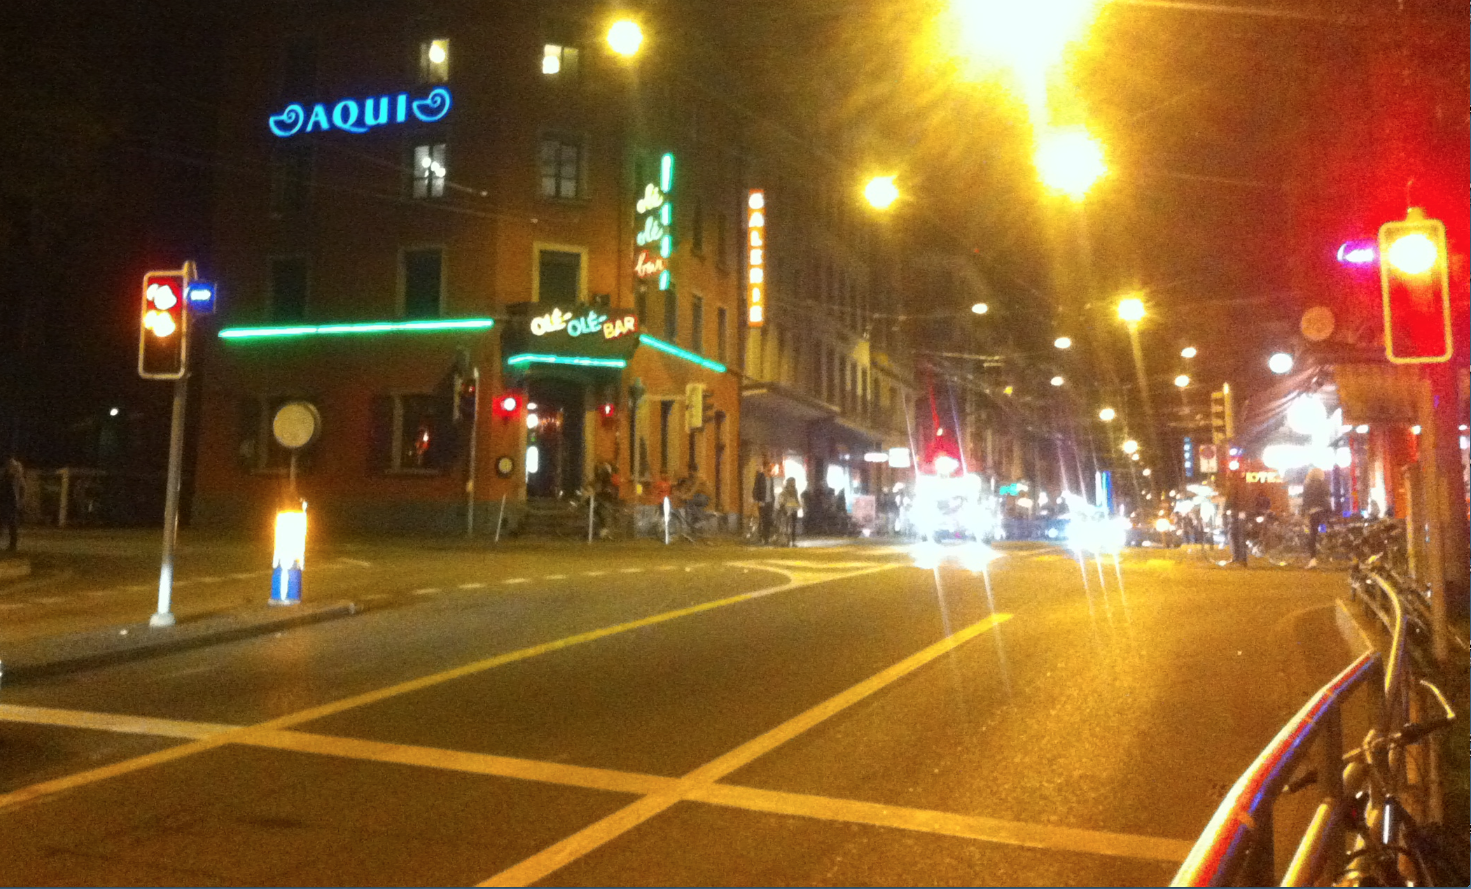 nightlife langstrasse